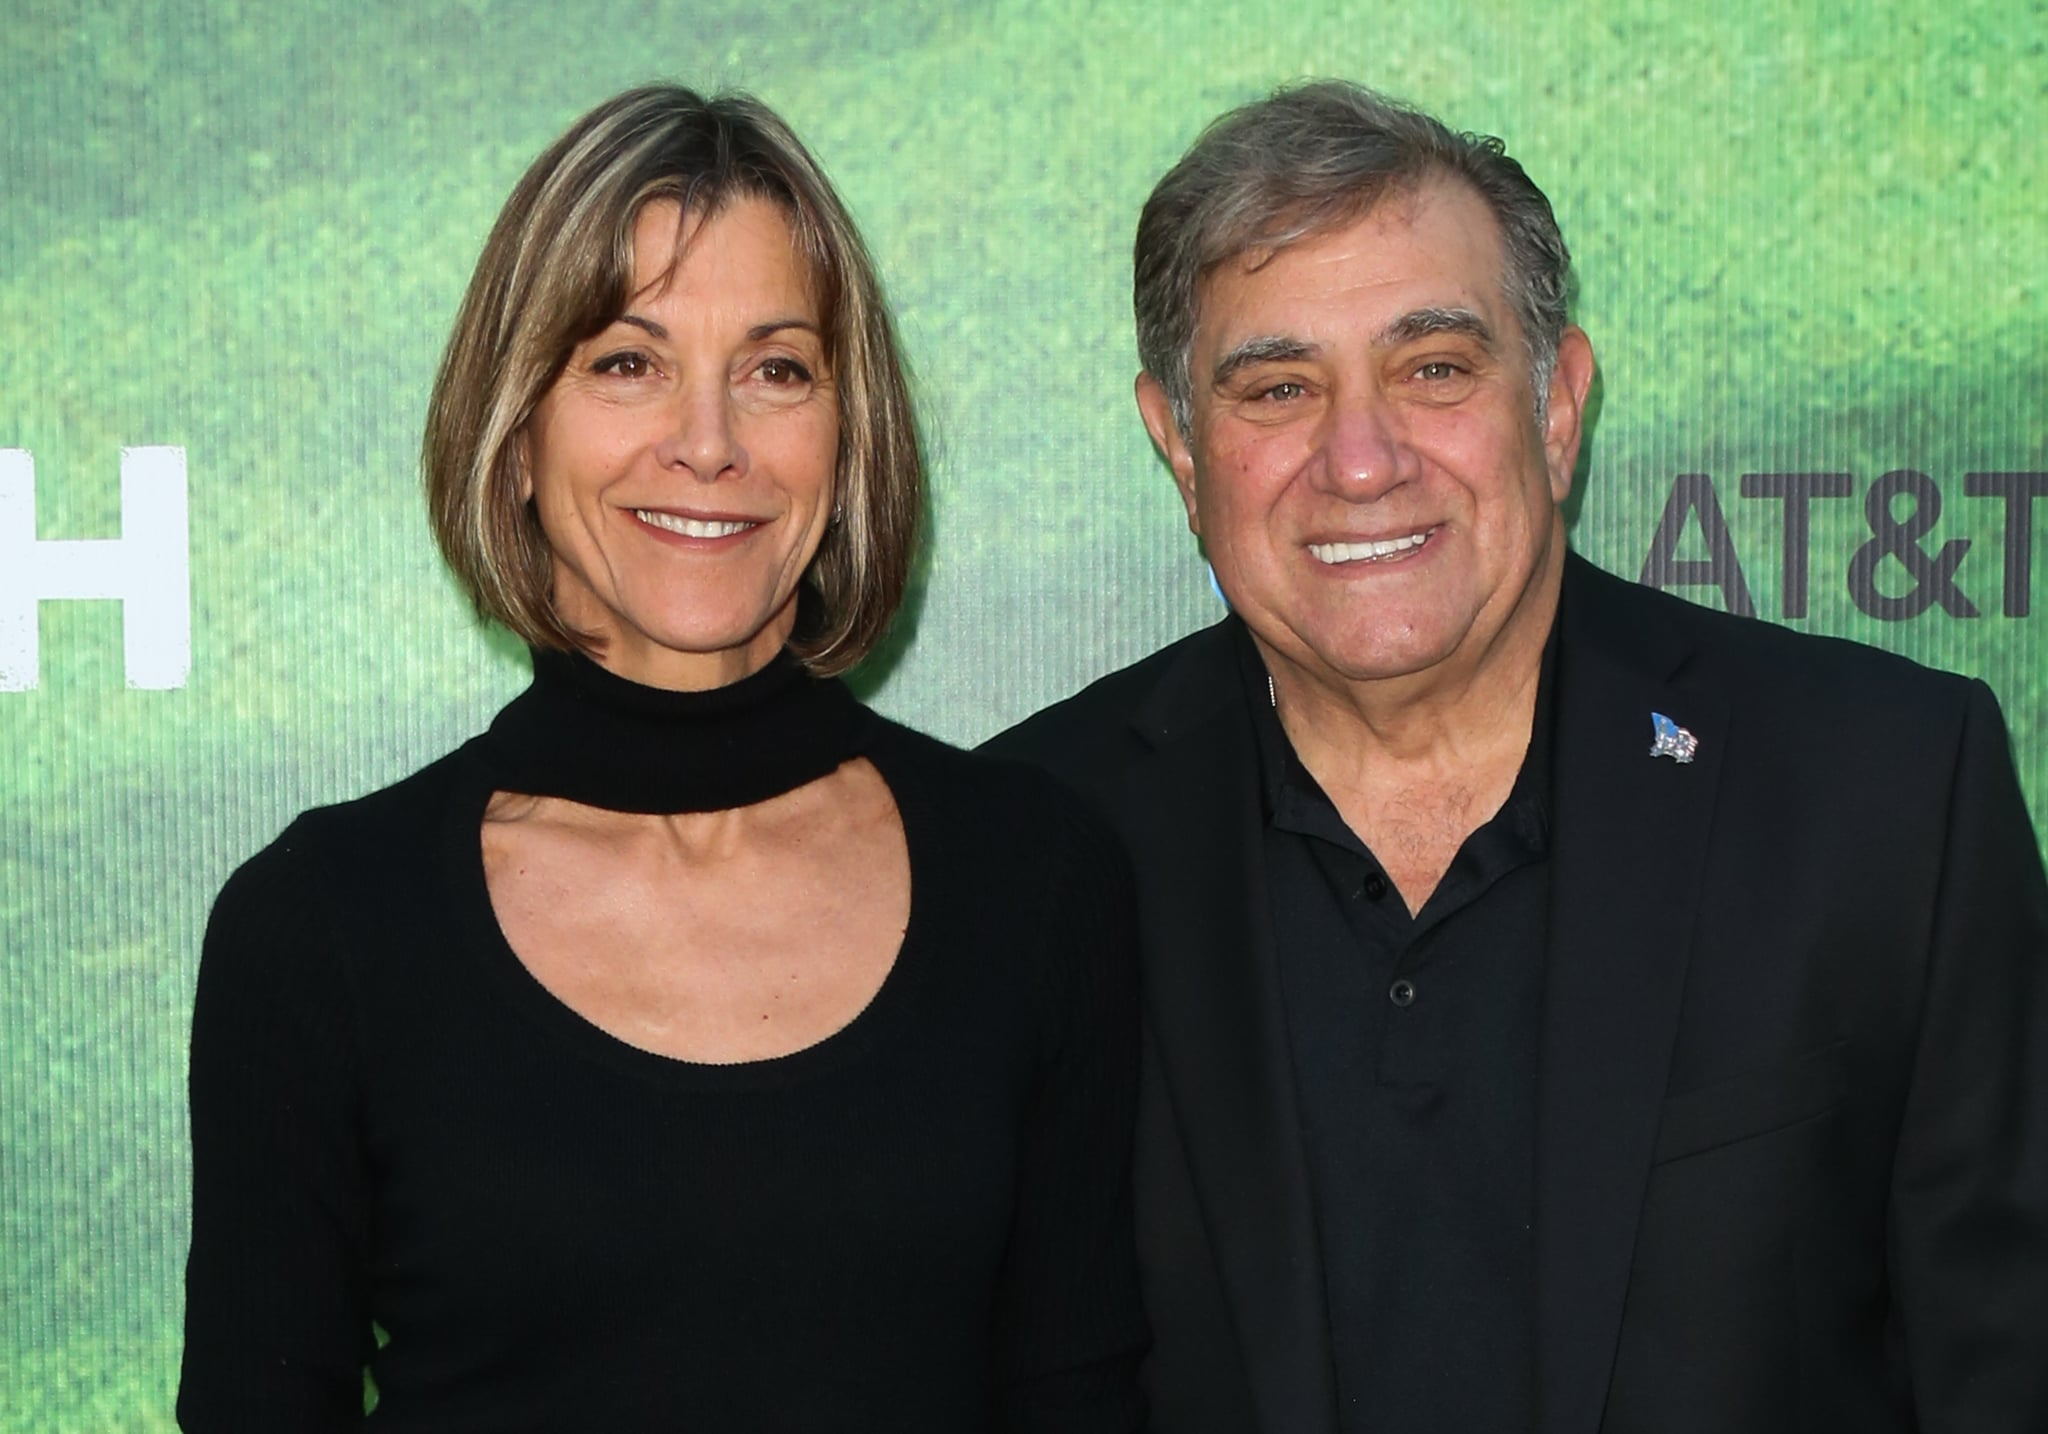 LOS ANGELES, CA - SEPTEMBER 13:  Actors Wendie Malick (L) and Dan Lauria (R) attend the premiere of Fox's